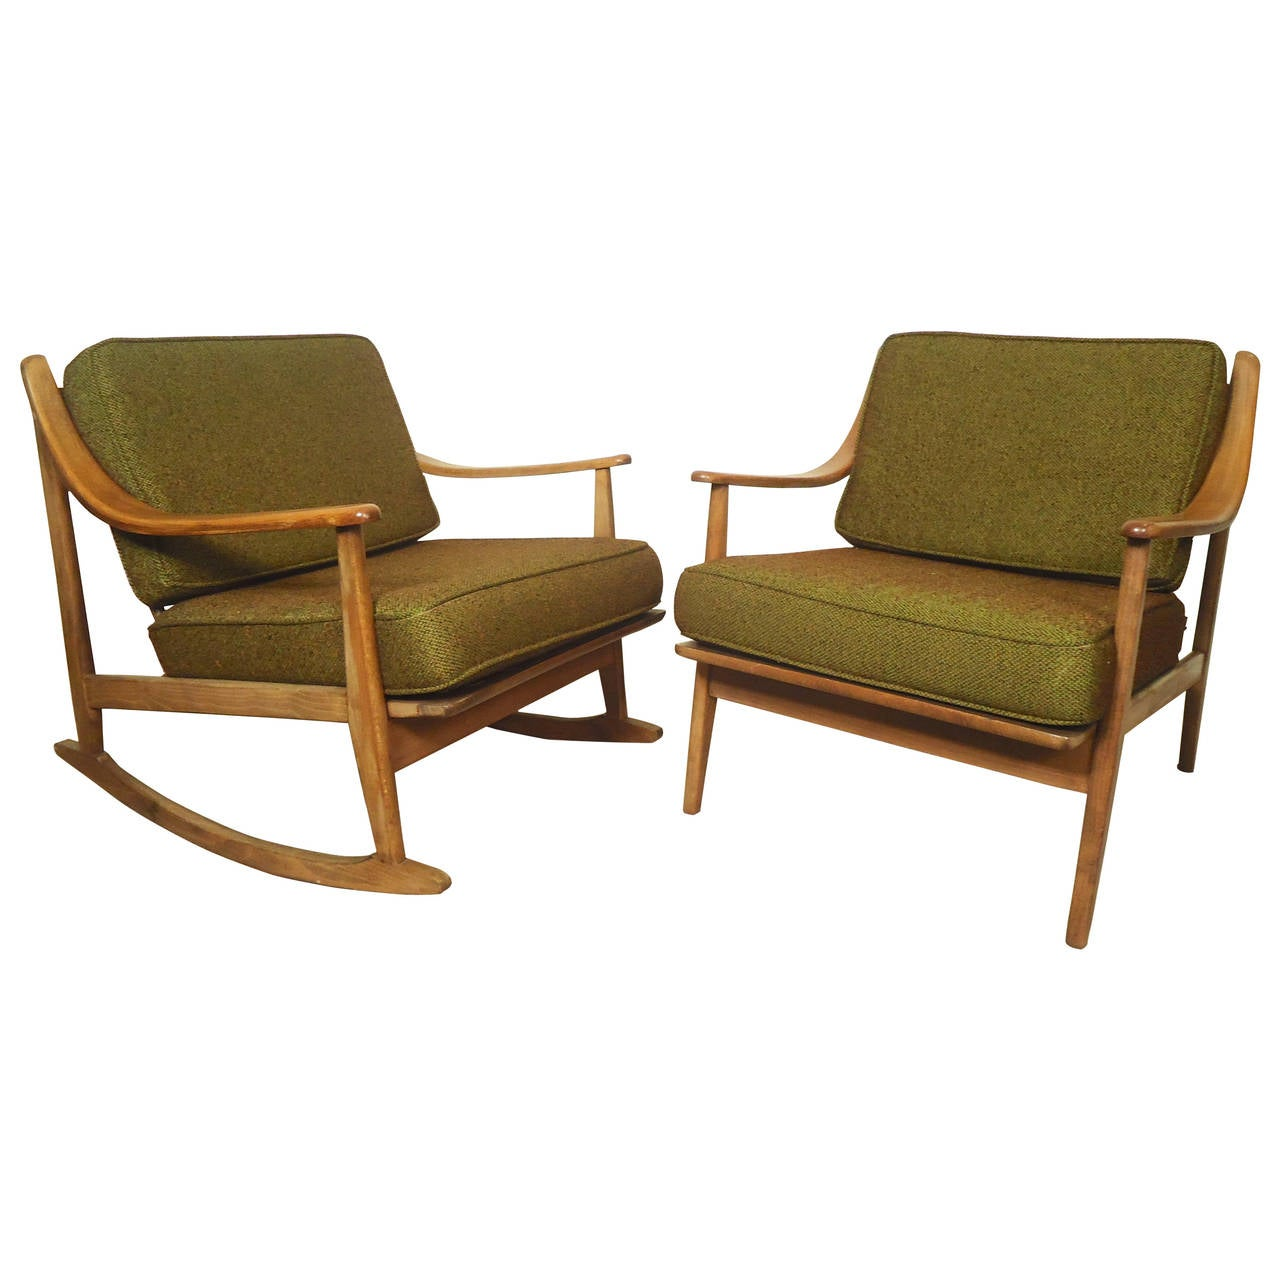 Peter hvidt style chair and rocker at 1stdibs - Stylish rocker recliner ...